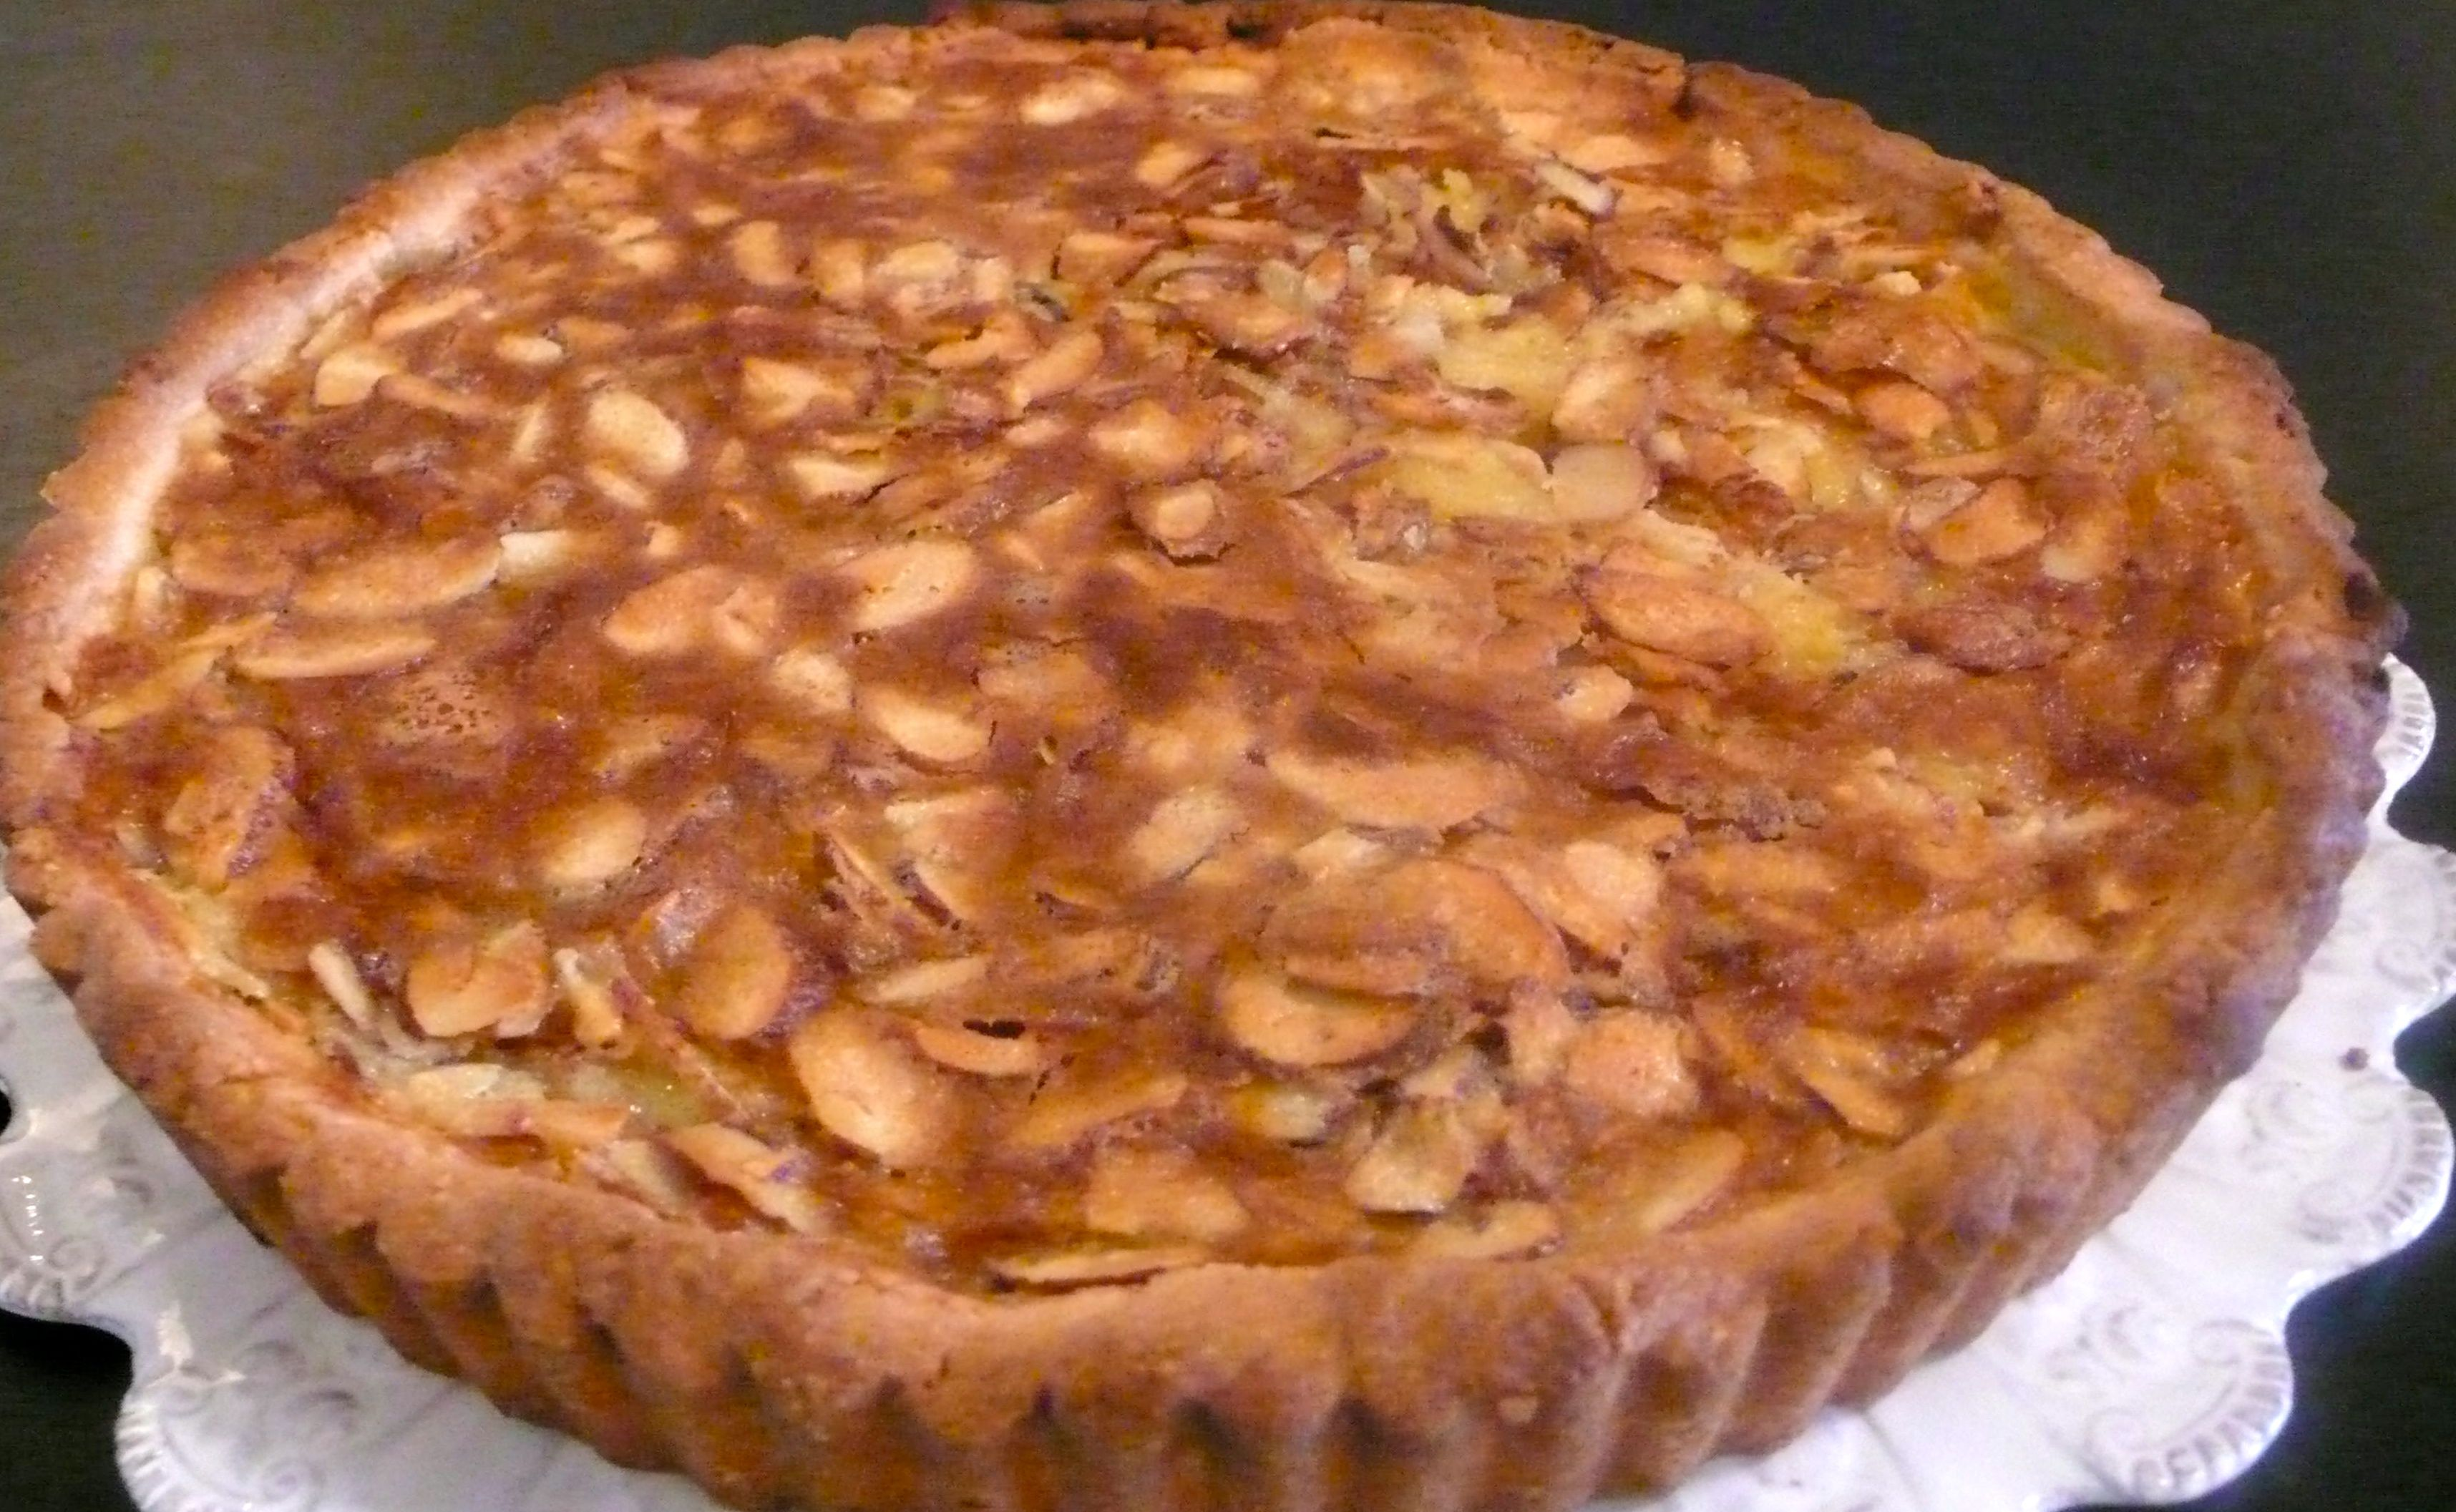 ALMOND LOVER'S TART